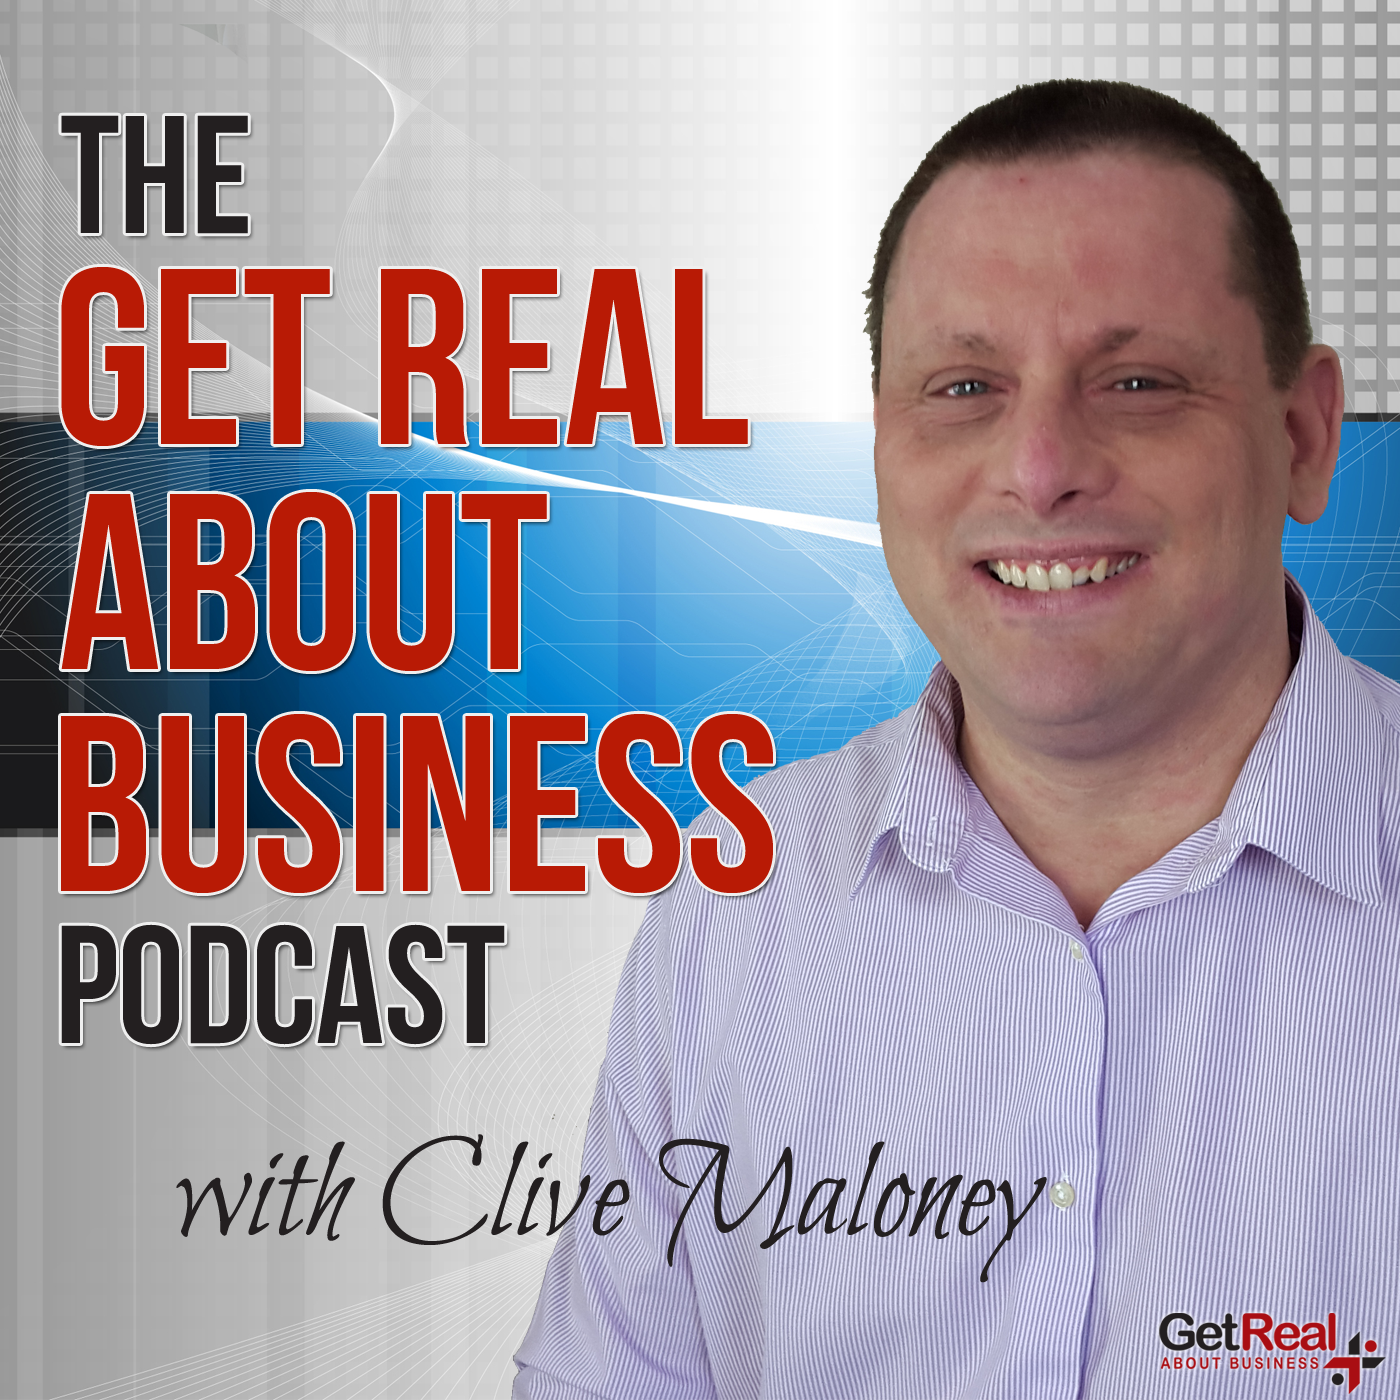 Get Real About Business Podcast